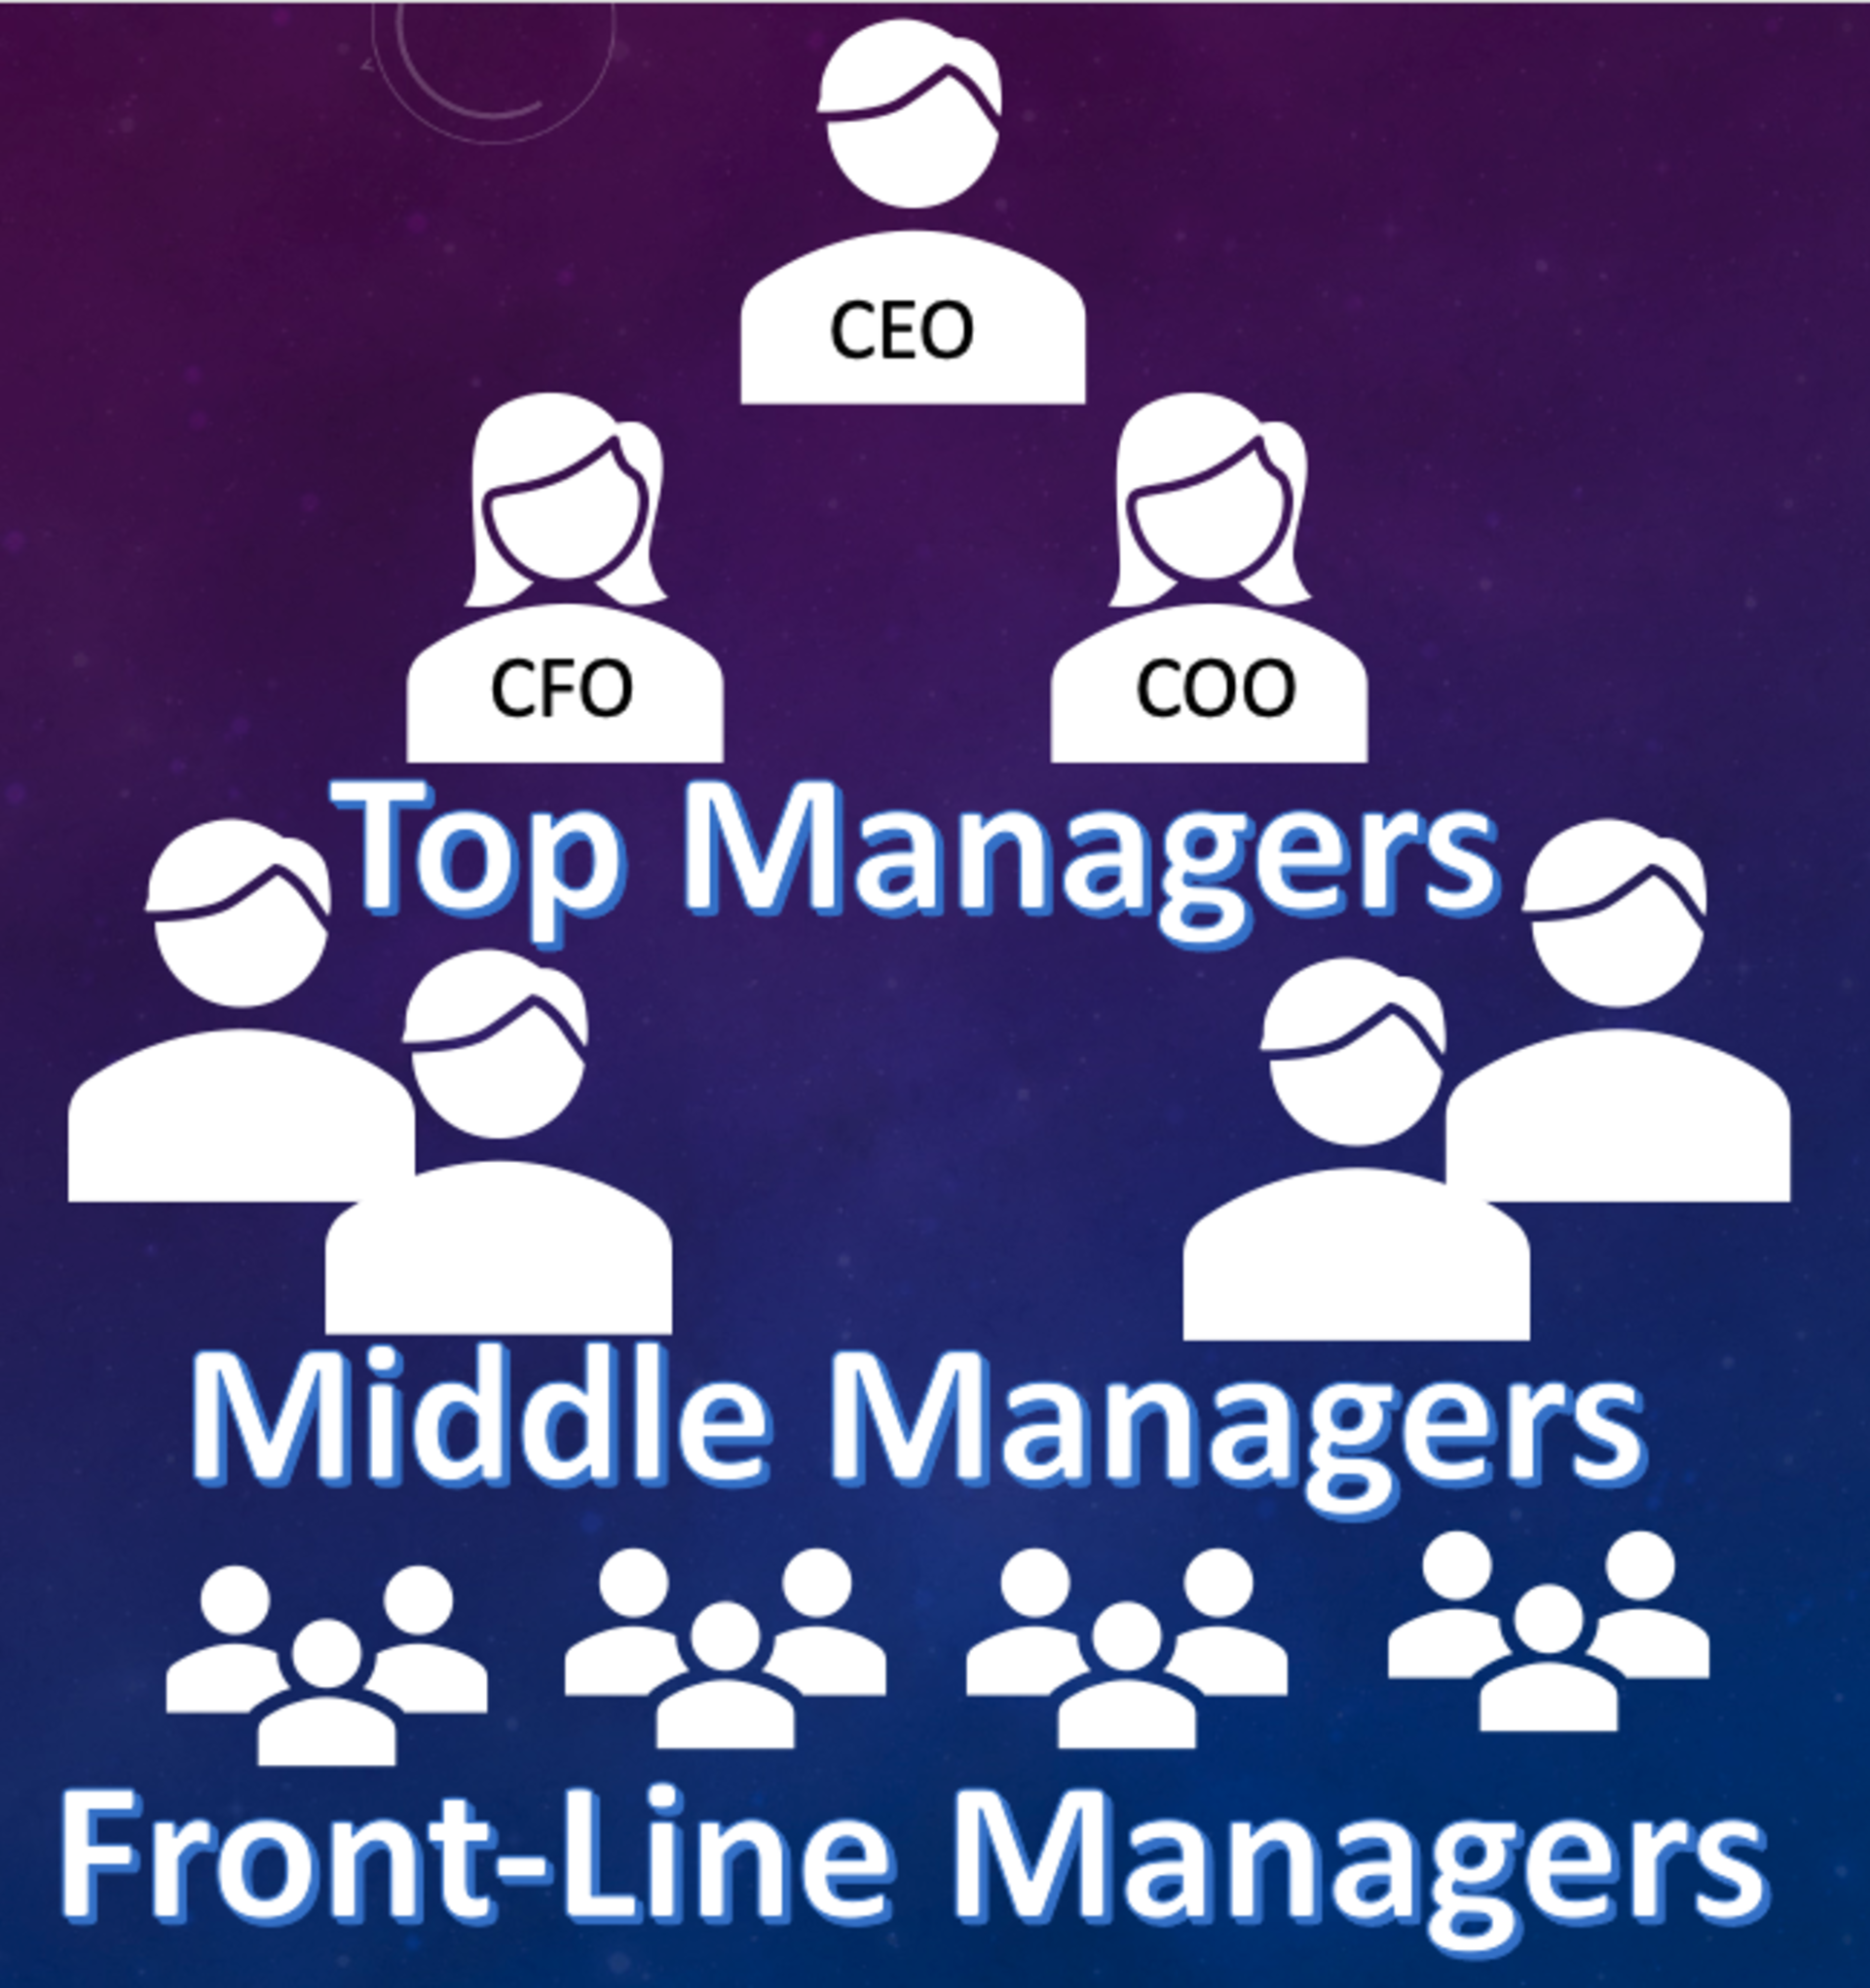 The Hierarchy of Corporate Titles